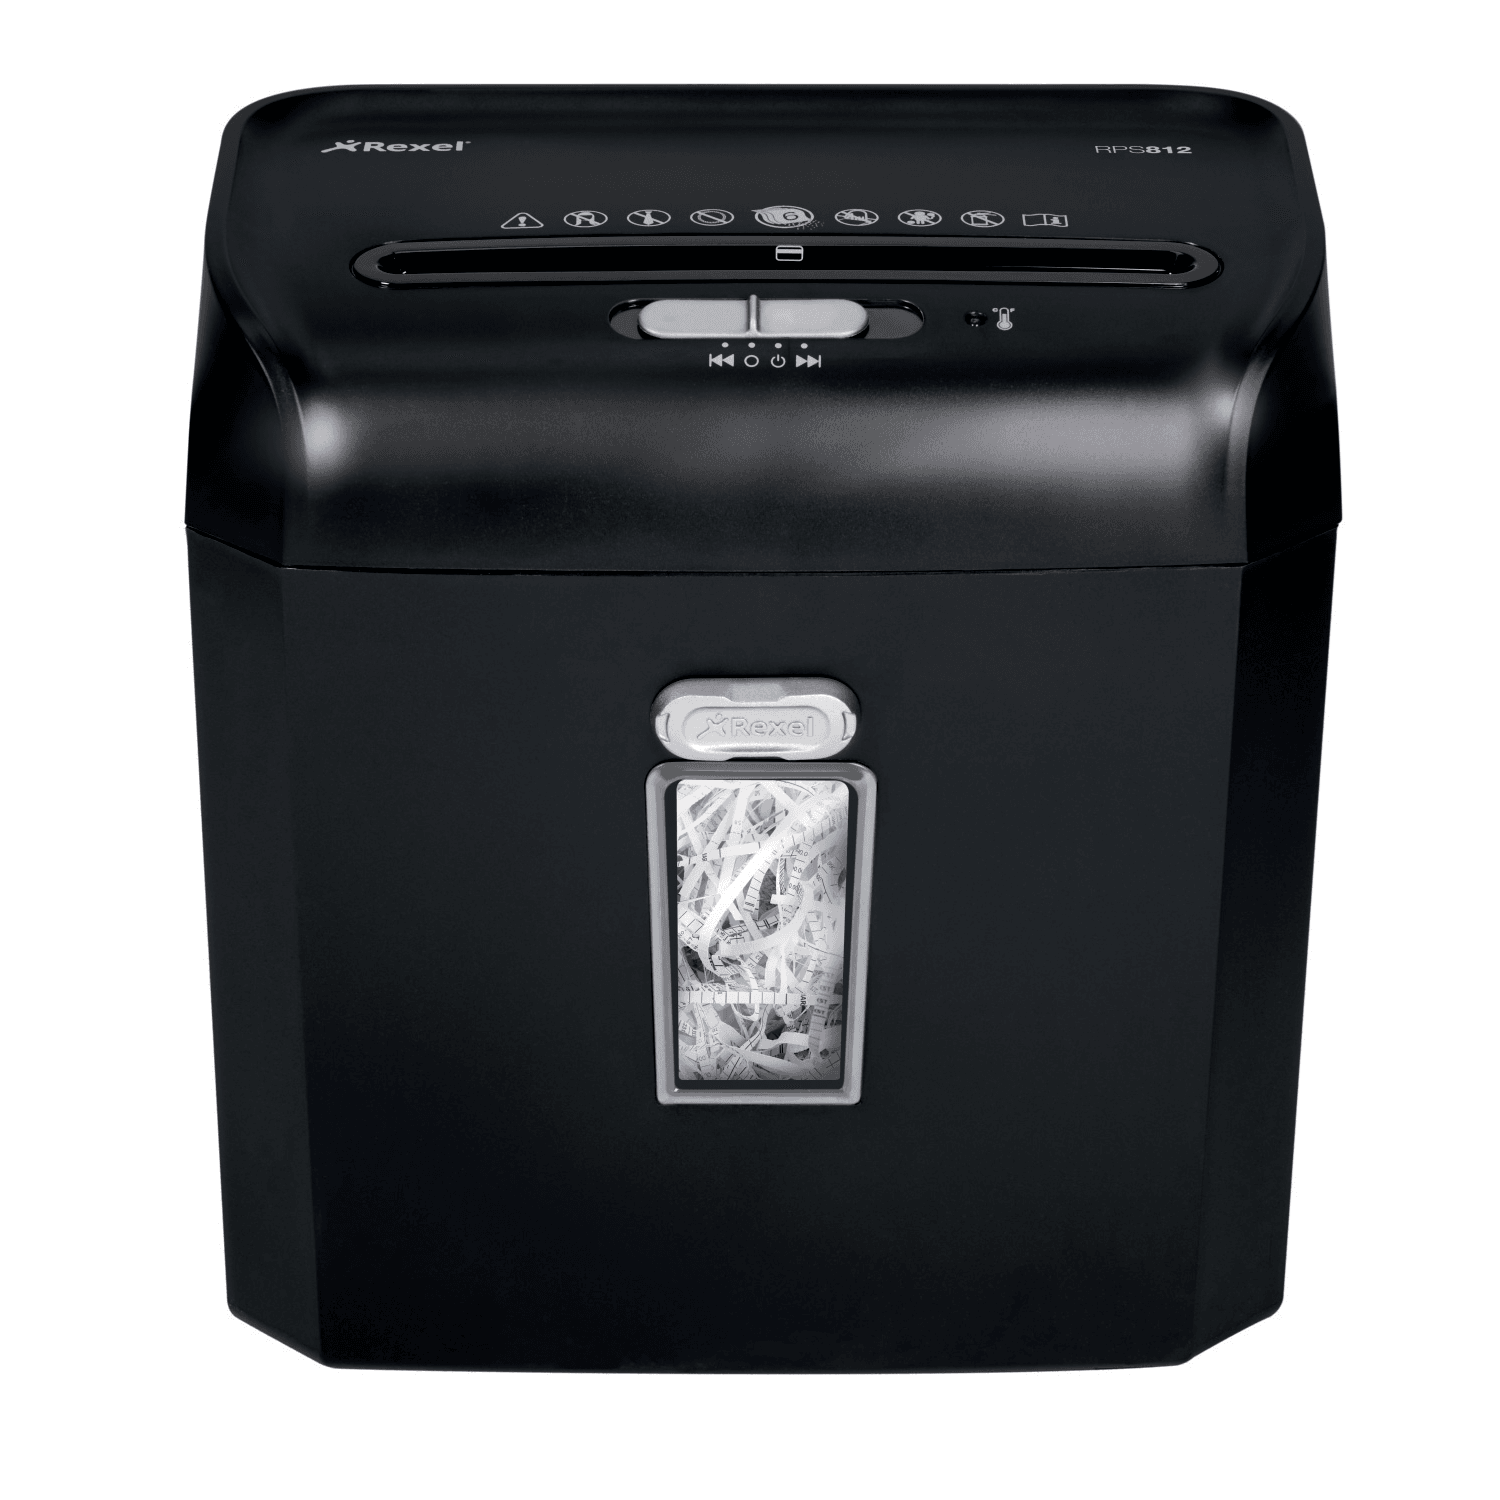 Rexel Promax RPS812 Shredder